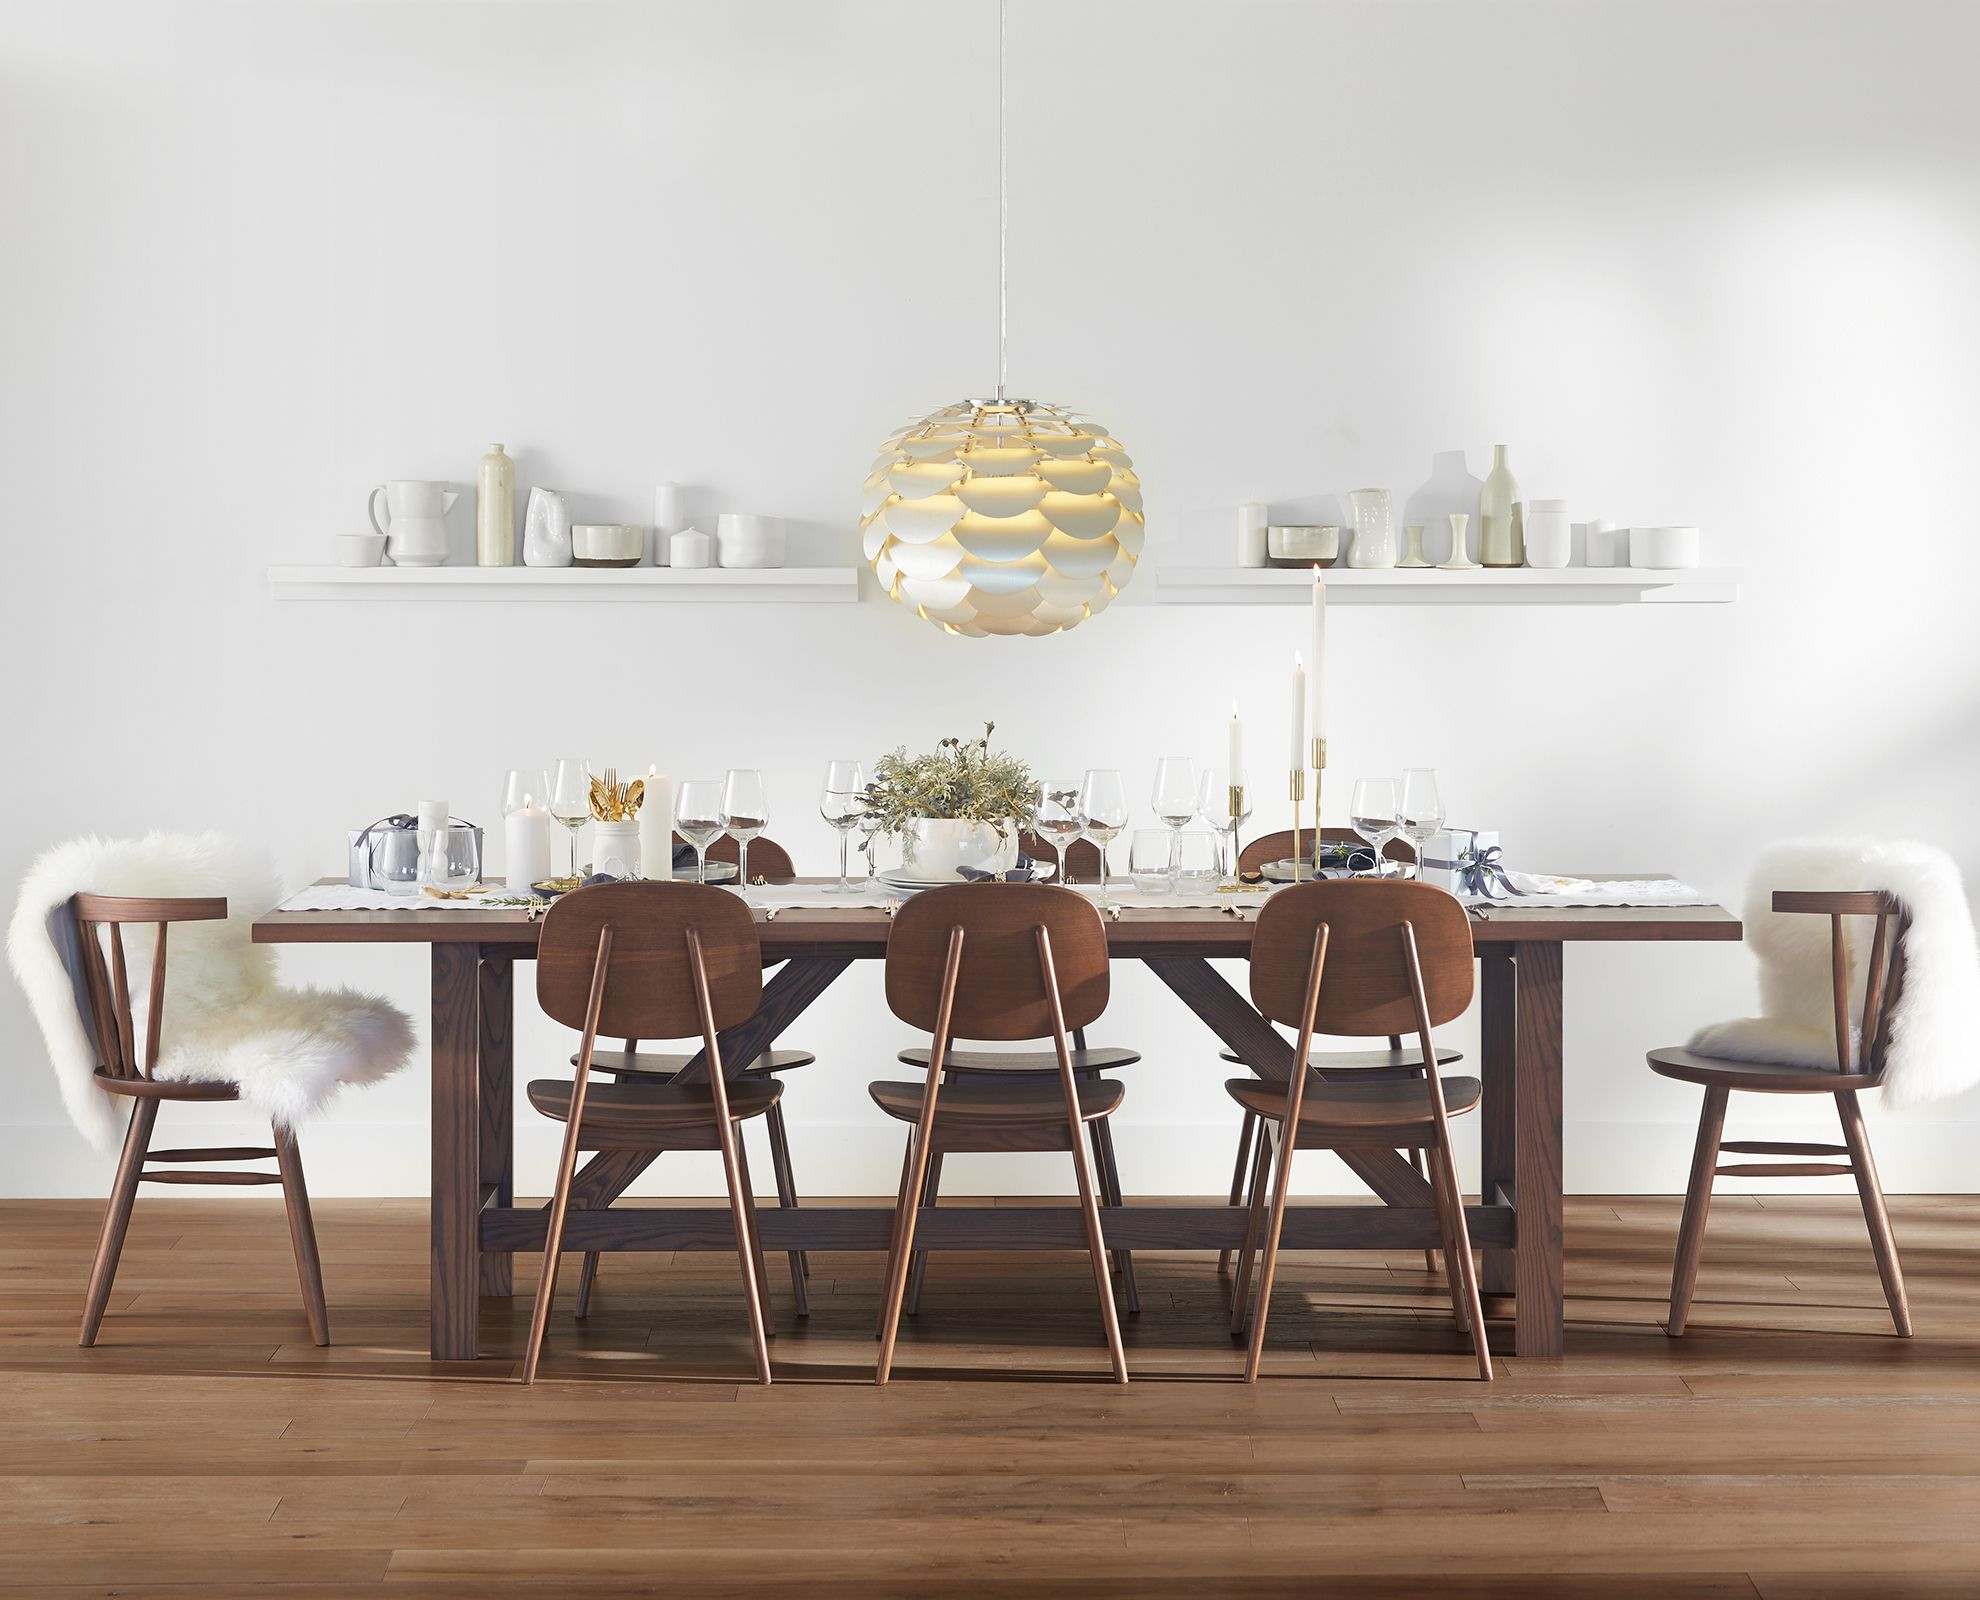 Mixing Dining Room Chairs Vaerd Dining Chair Mix And Match Tables And Chairs